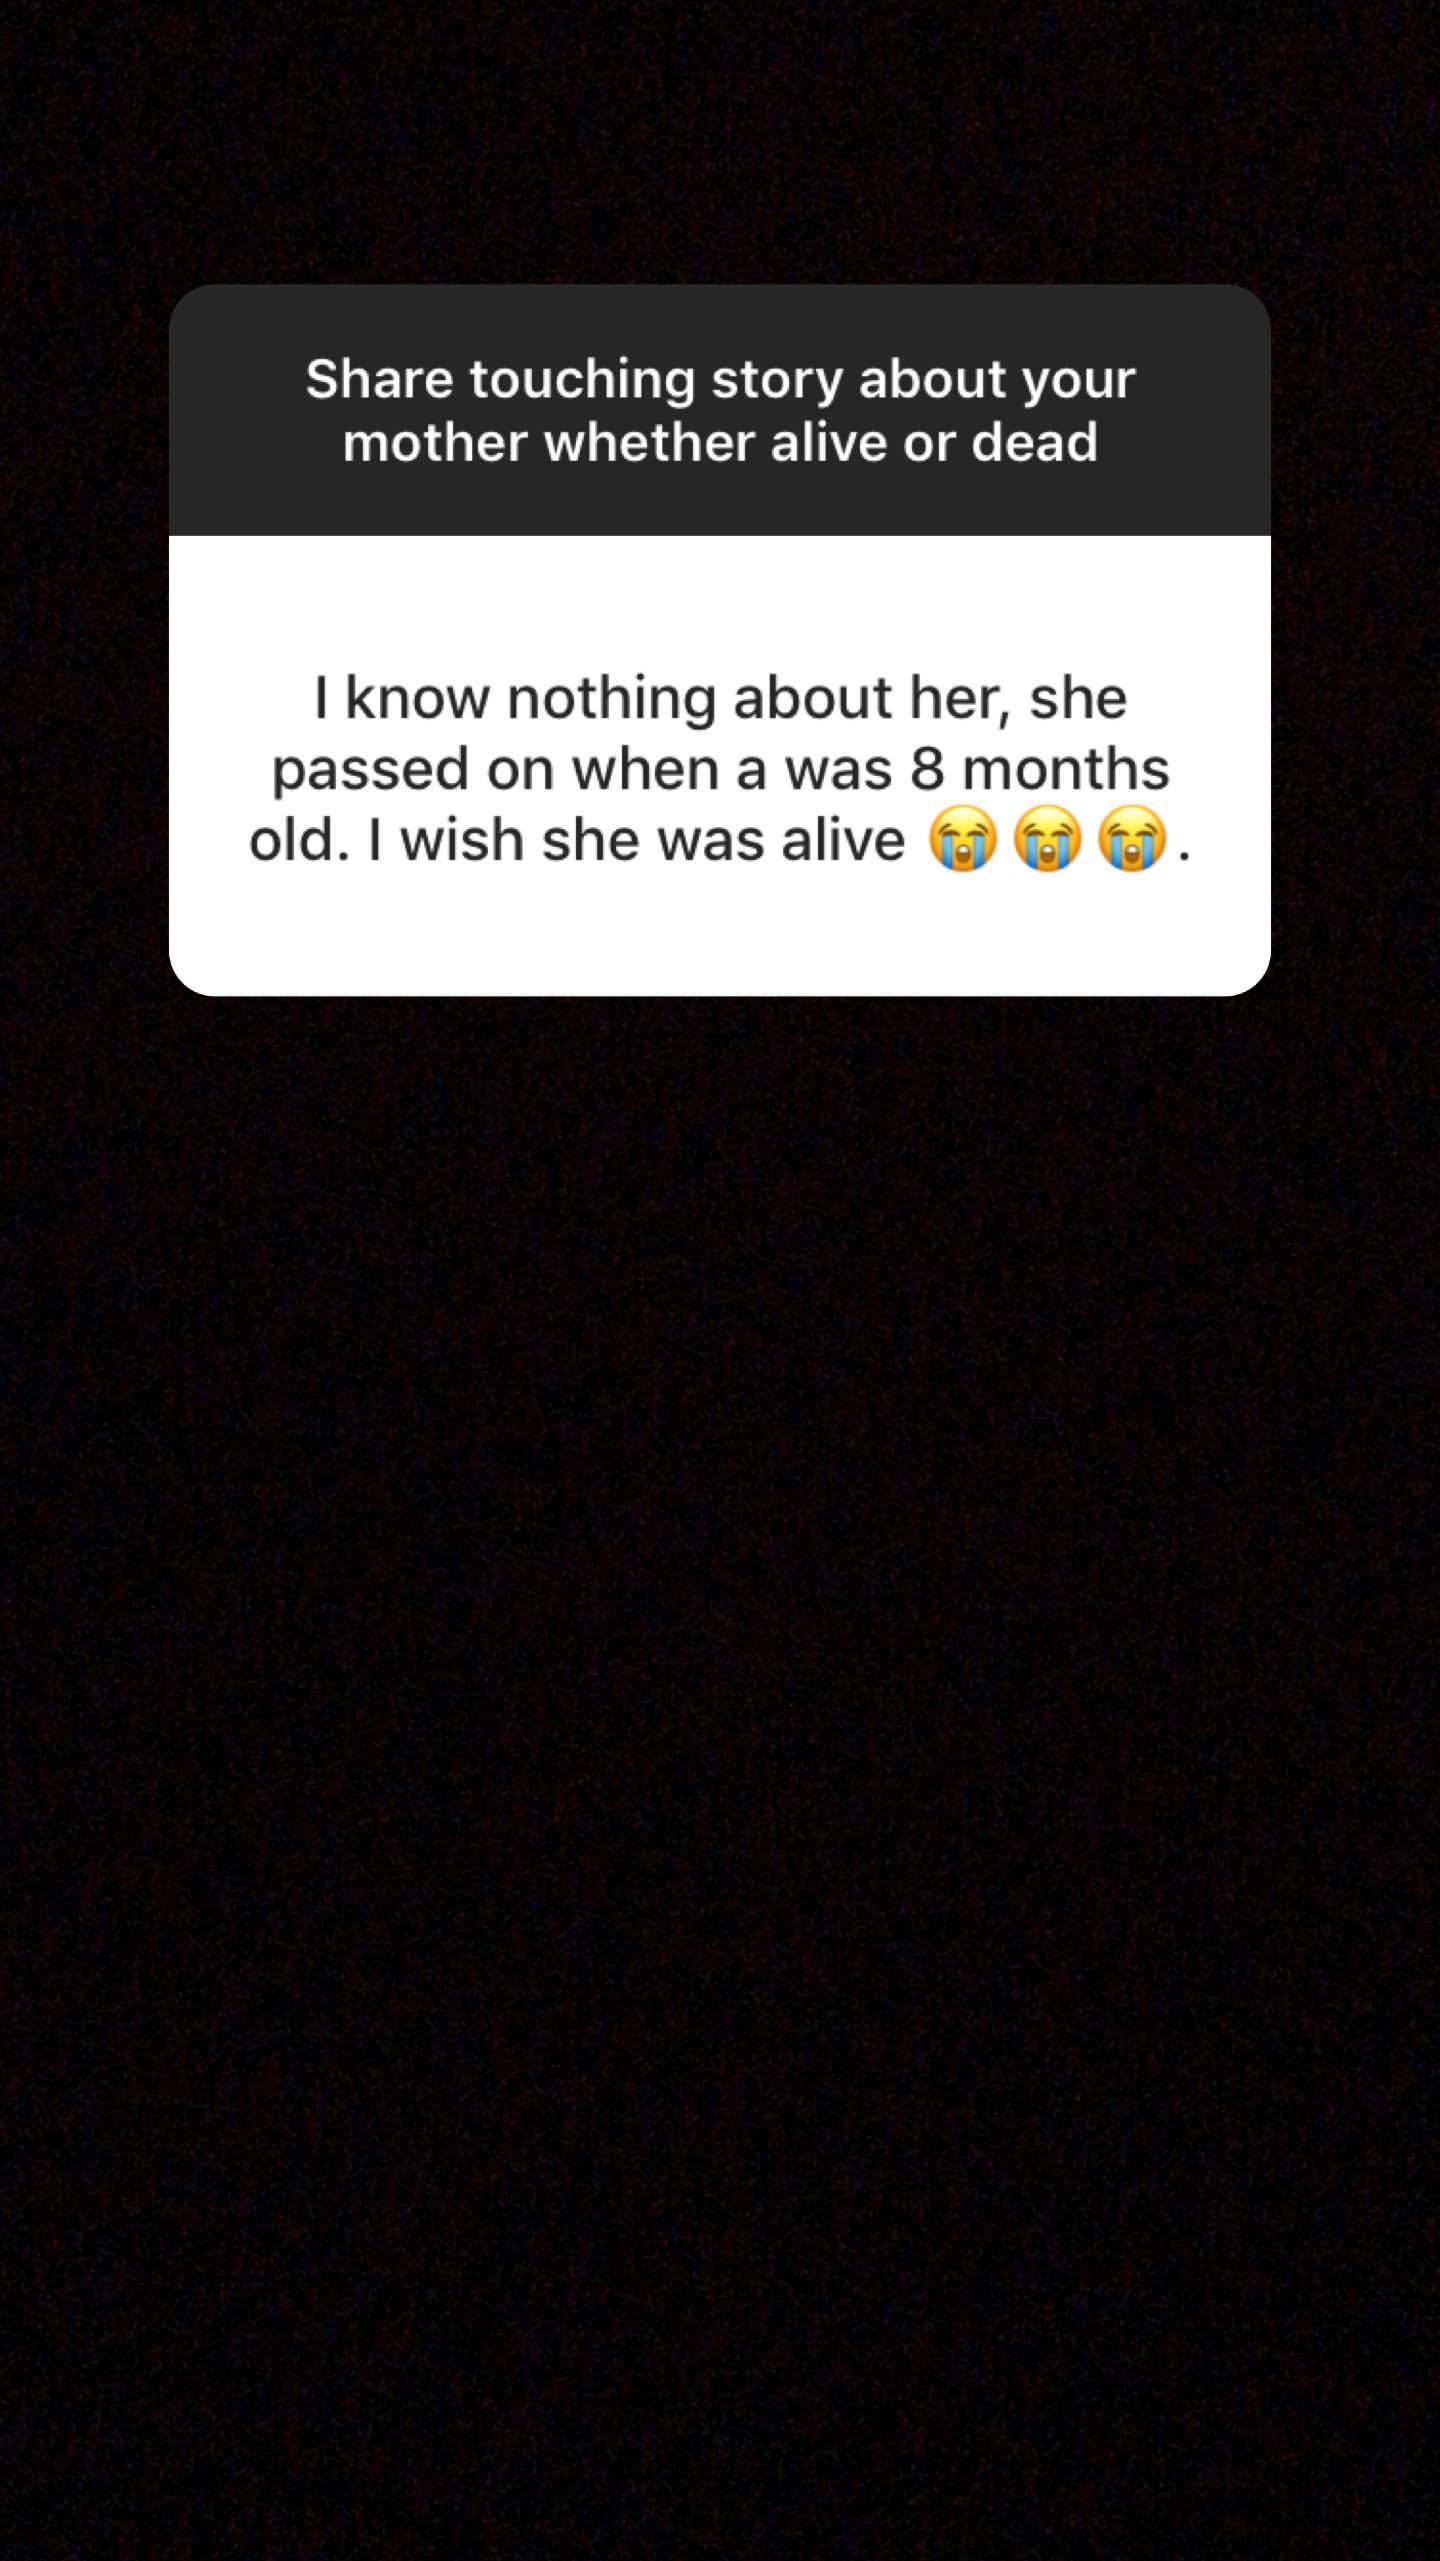 58409882 137187090688079 1059975595999226349 n - Tear-jerking! Mpasho fans break down sharing touching stories about their mothers